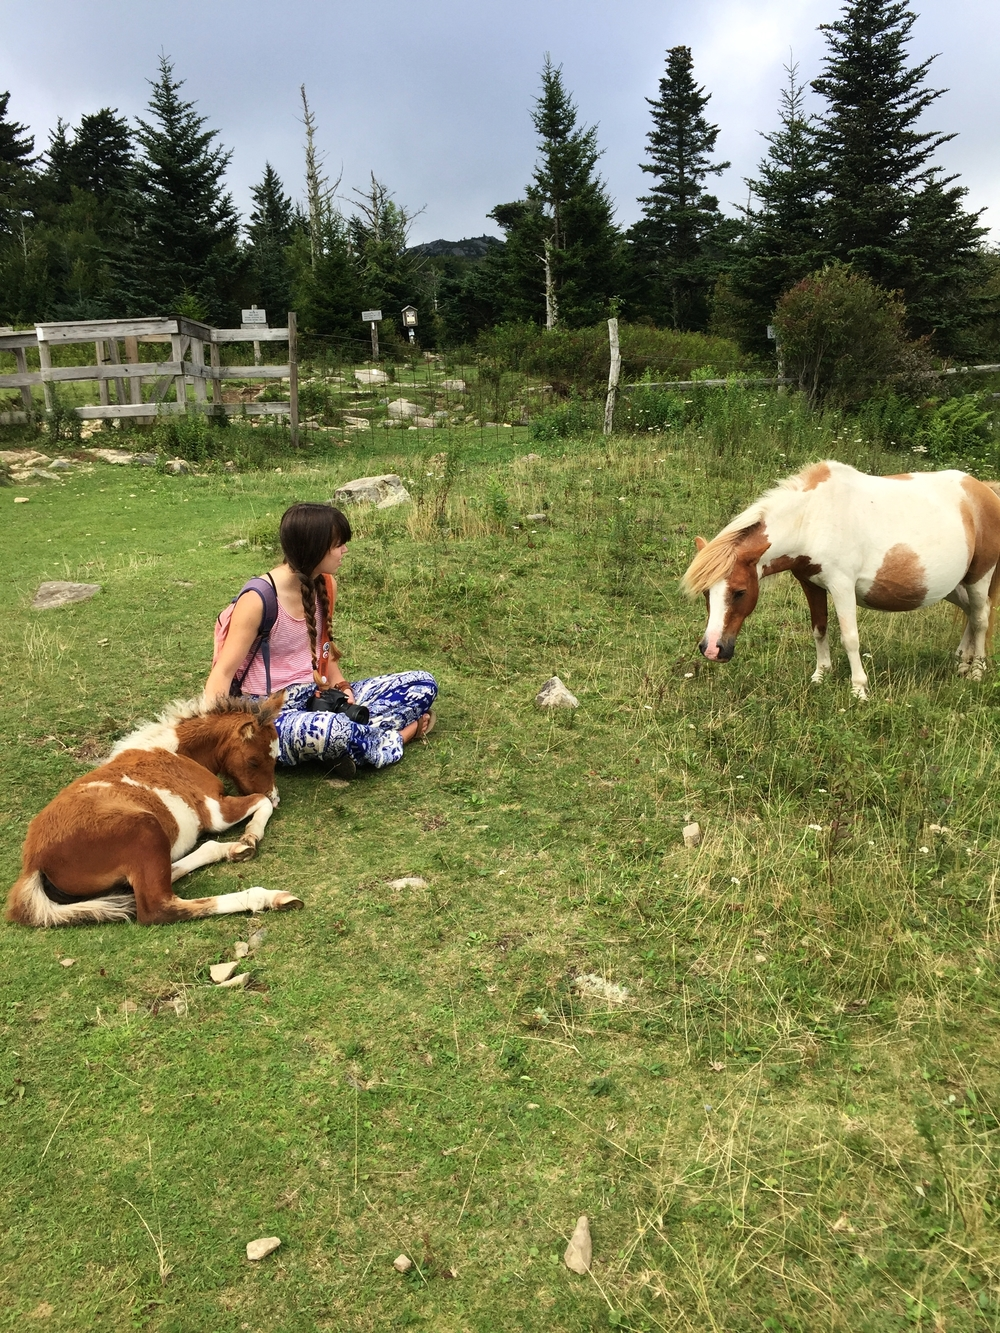 THE NOT-SO-WILD PONIES AT GRAYSON HIGHLANDS STATE PARK